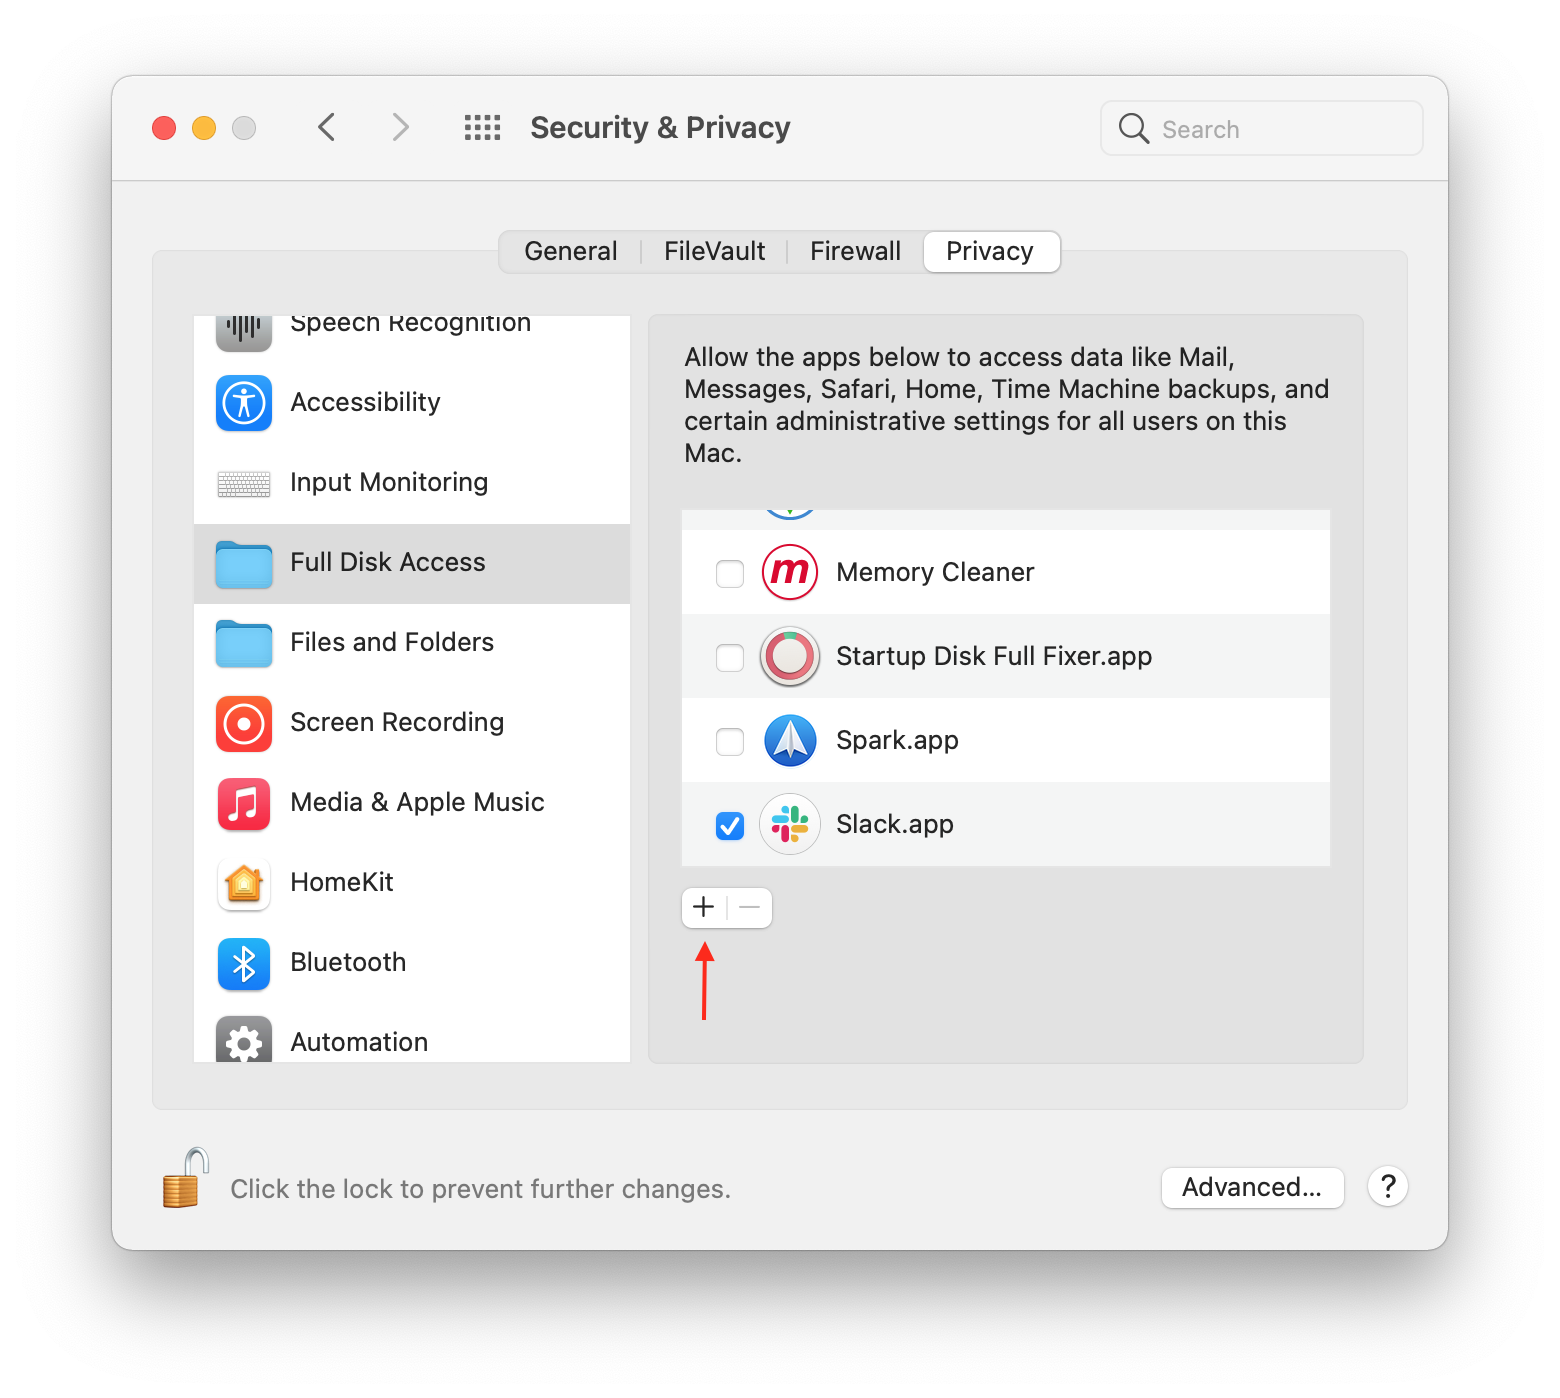 security privacy full disk access